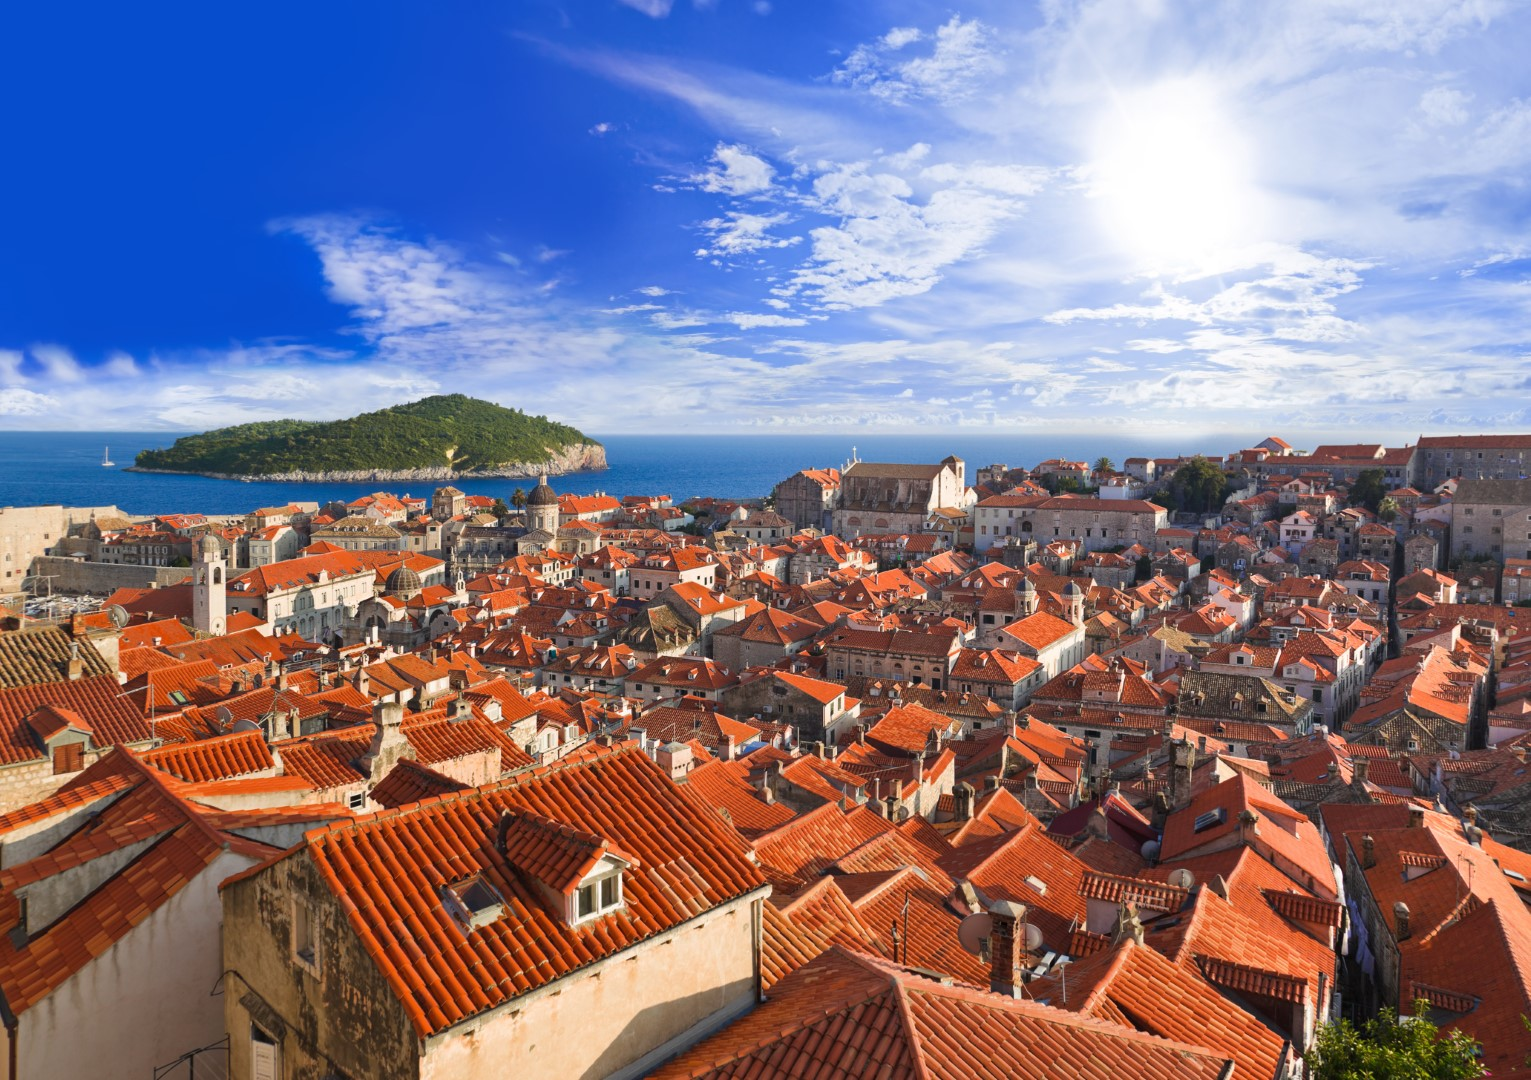 Game of thrones filming locations in Dubrovnik, Croatia